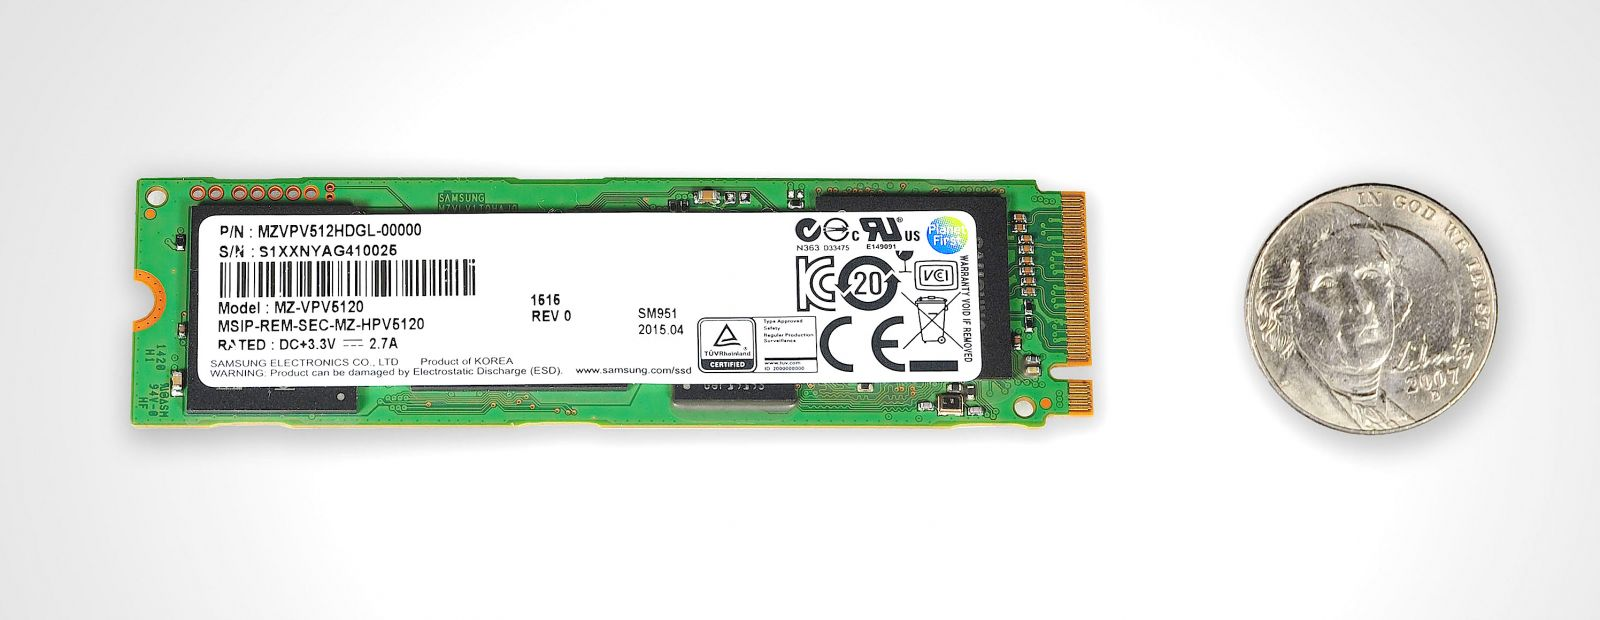 Samsung will be manufacturing world's first NVMe PCIe SSD